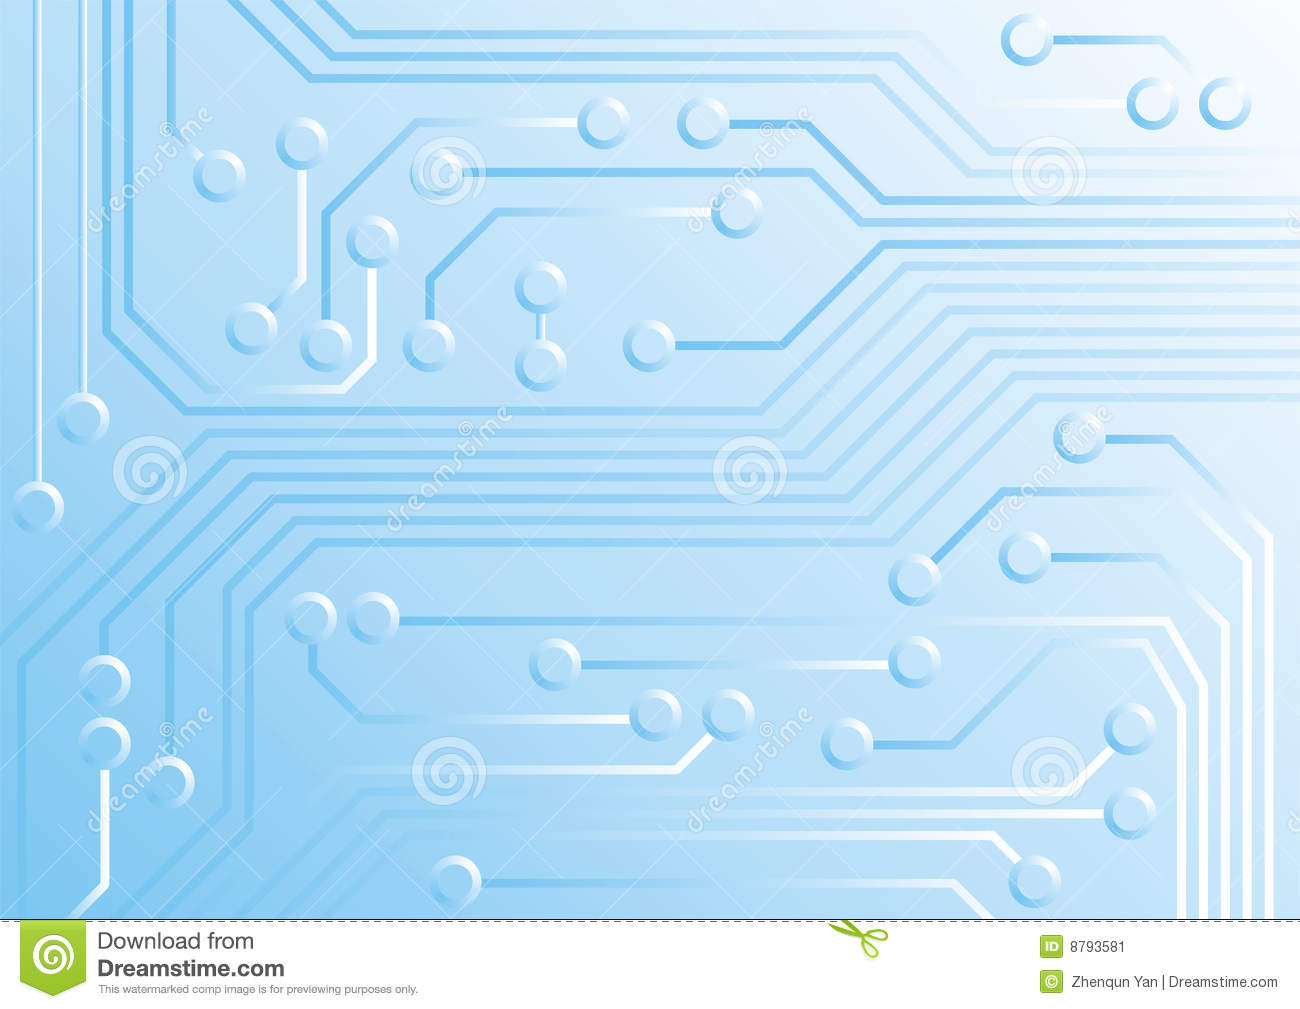 Circuitry Stock Vector Illustration Of Component Background 8793581 Circuit Free Electronic Circuits Diagrams Royalty Photo